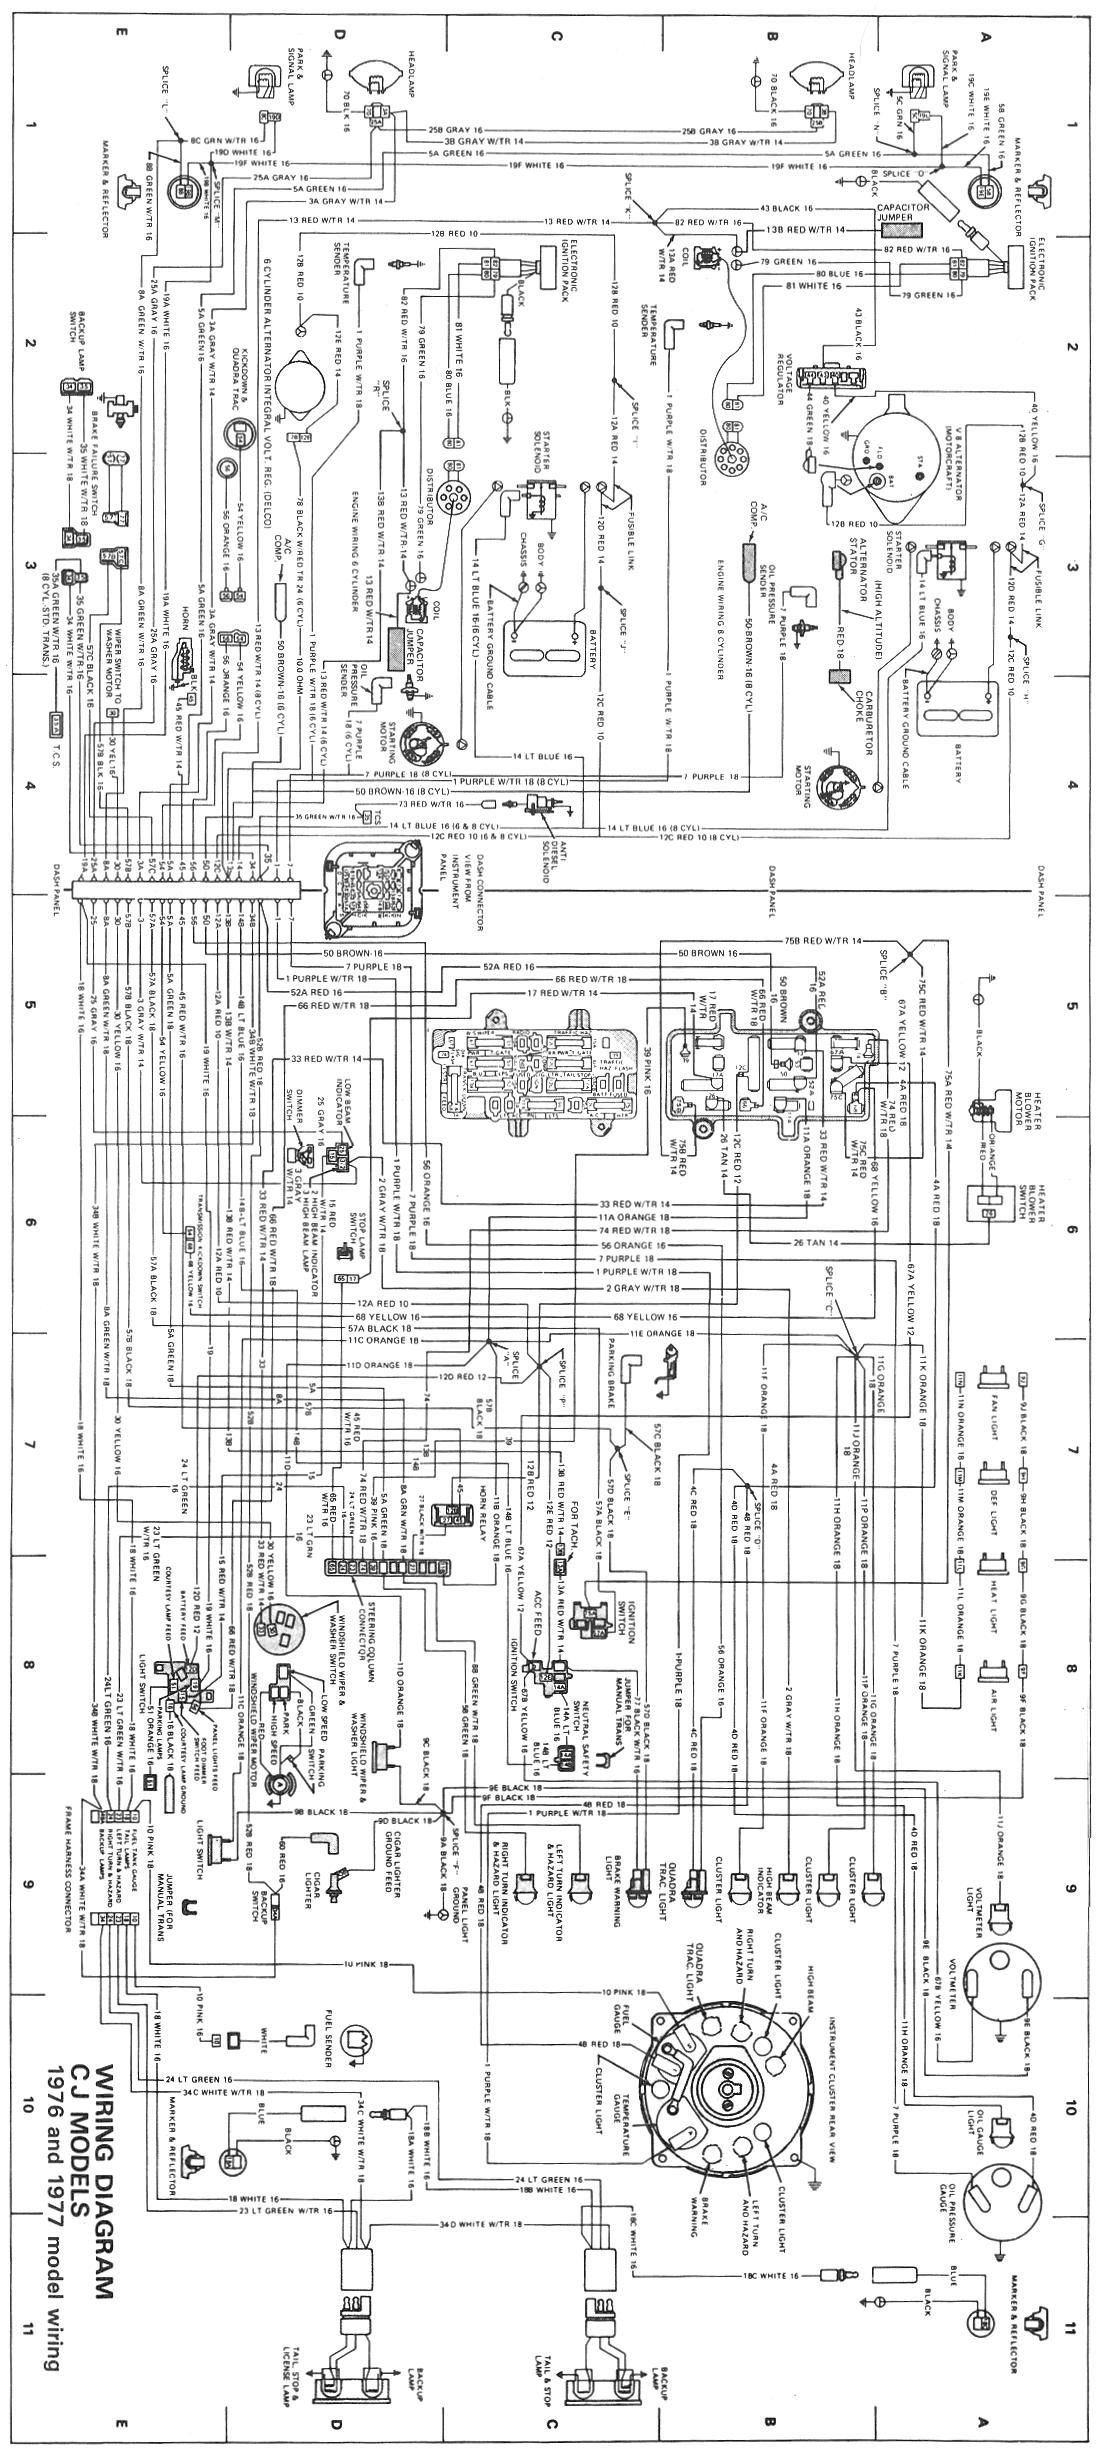 77 jeep cj7 wiring diagram diagram base website wiring diagram ...  diagram base website full edition - teutas